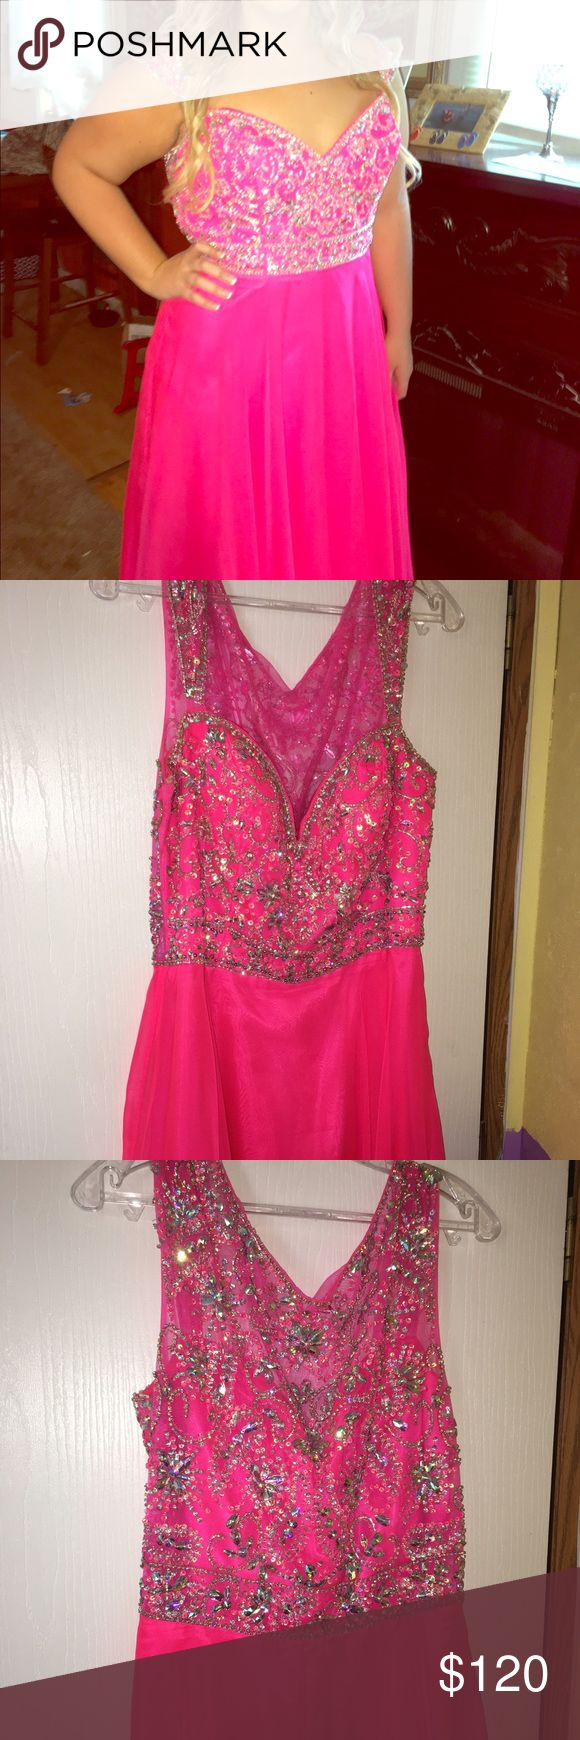 Pink Prom Dress 💖 Neon pink prom dress, fits more like a 14/16, in good condition, only wore once Panoply Dresses Prom